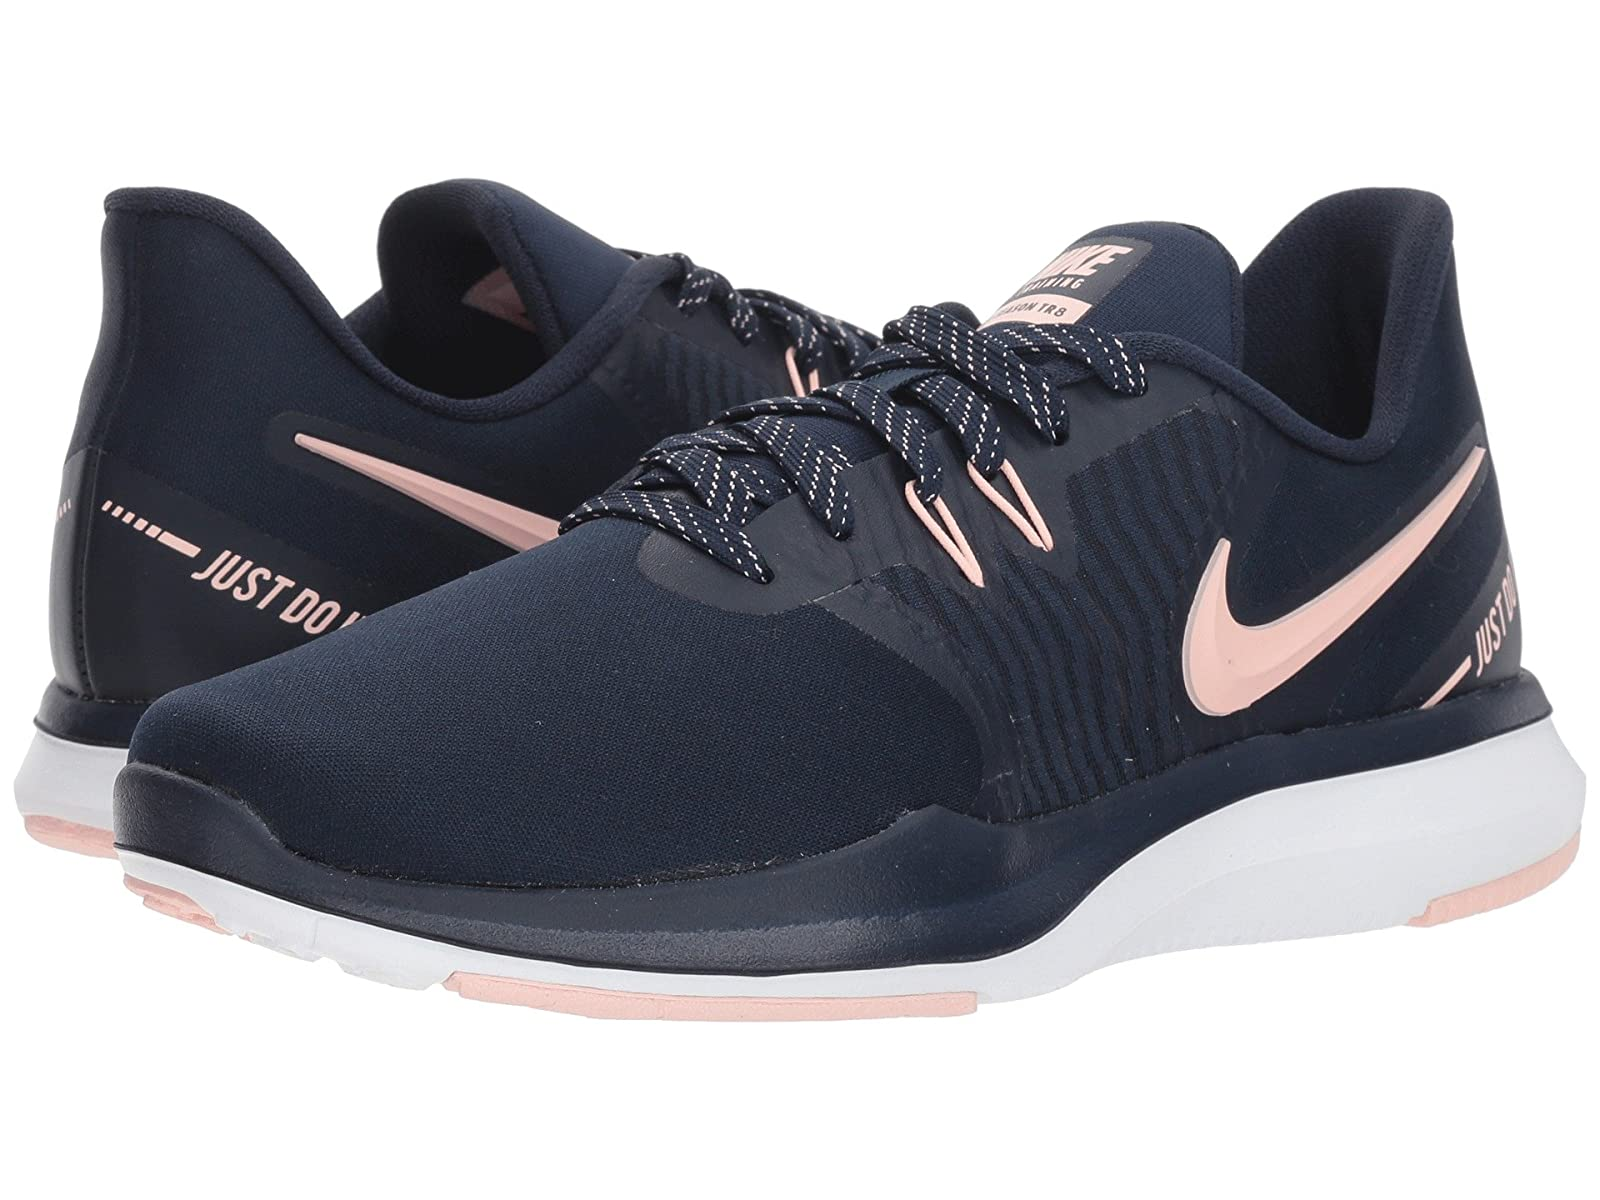 Nike In-Season Tr 8Atmospheric grades have affordable shoes